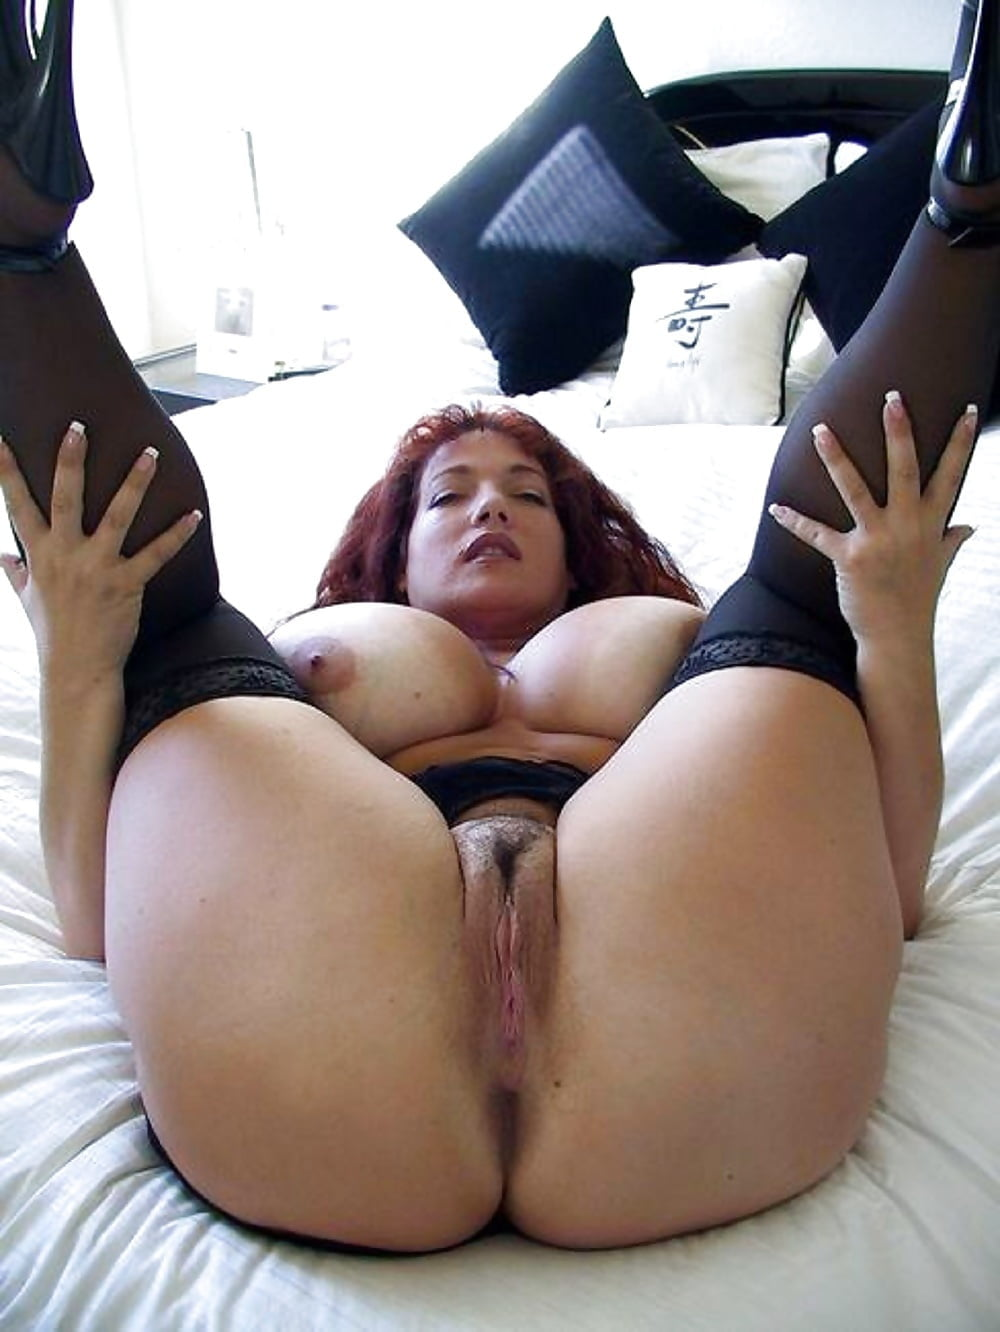 Muy Caliente Porn see and save as latinas muy caliente porn pict - 4crot